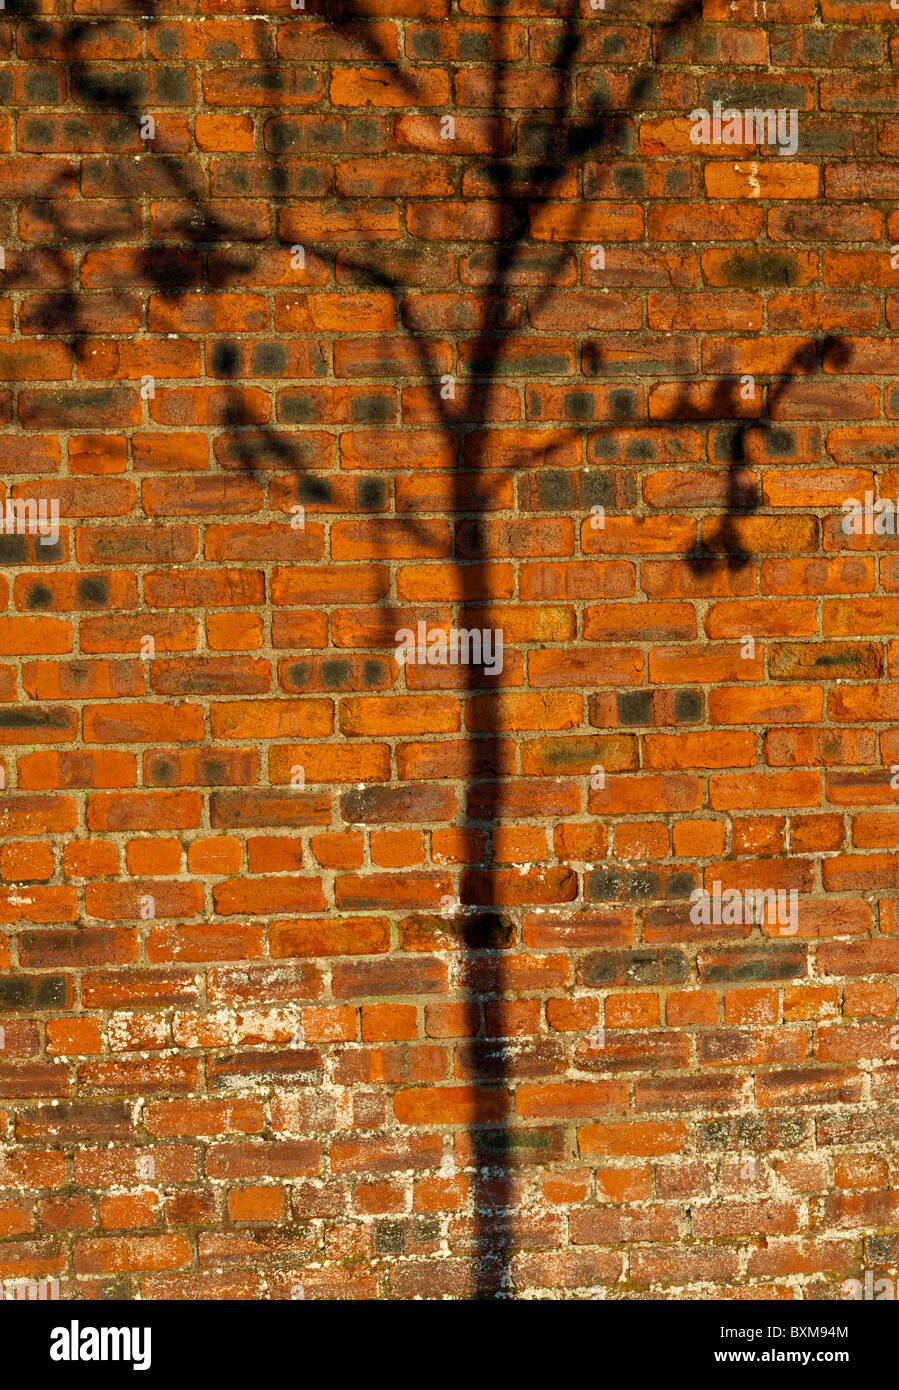 tree shadow on a red brick wall - Stock Image